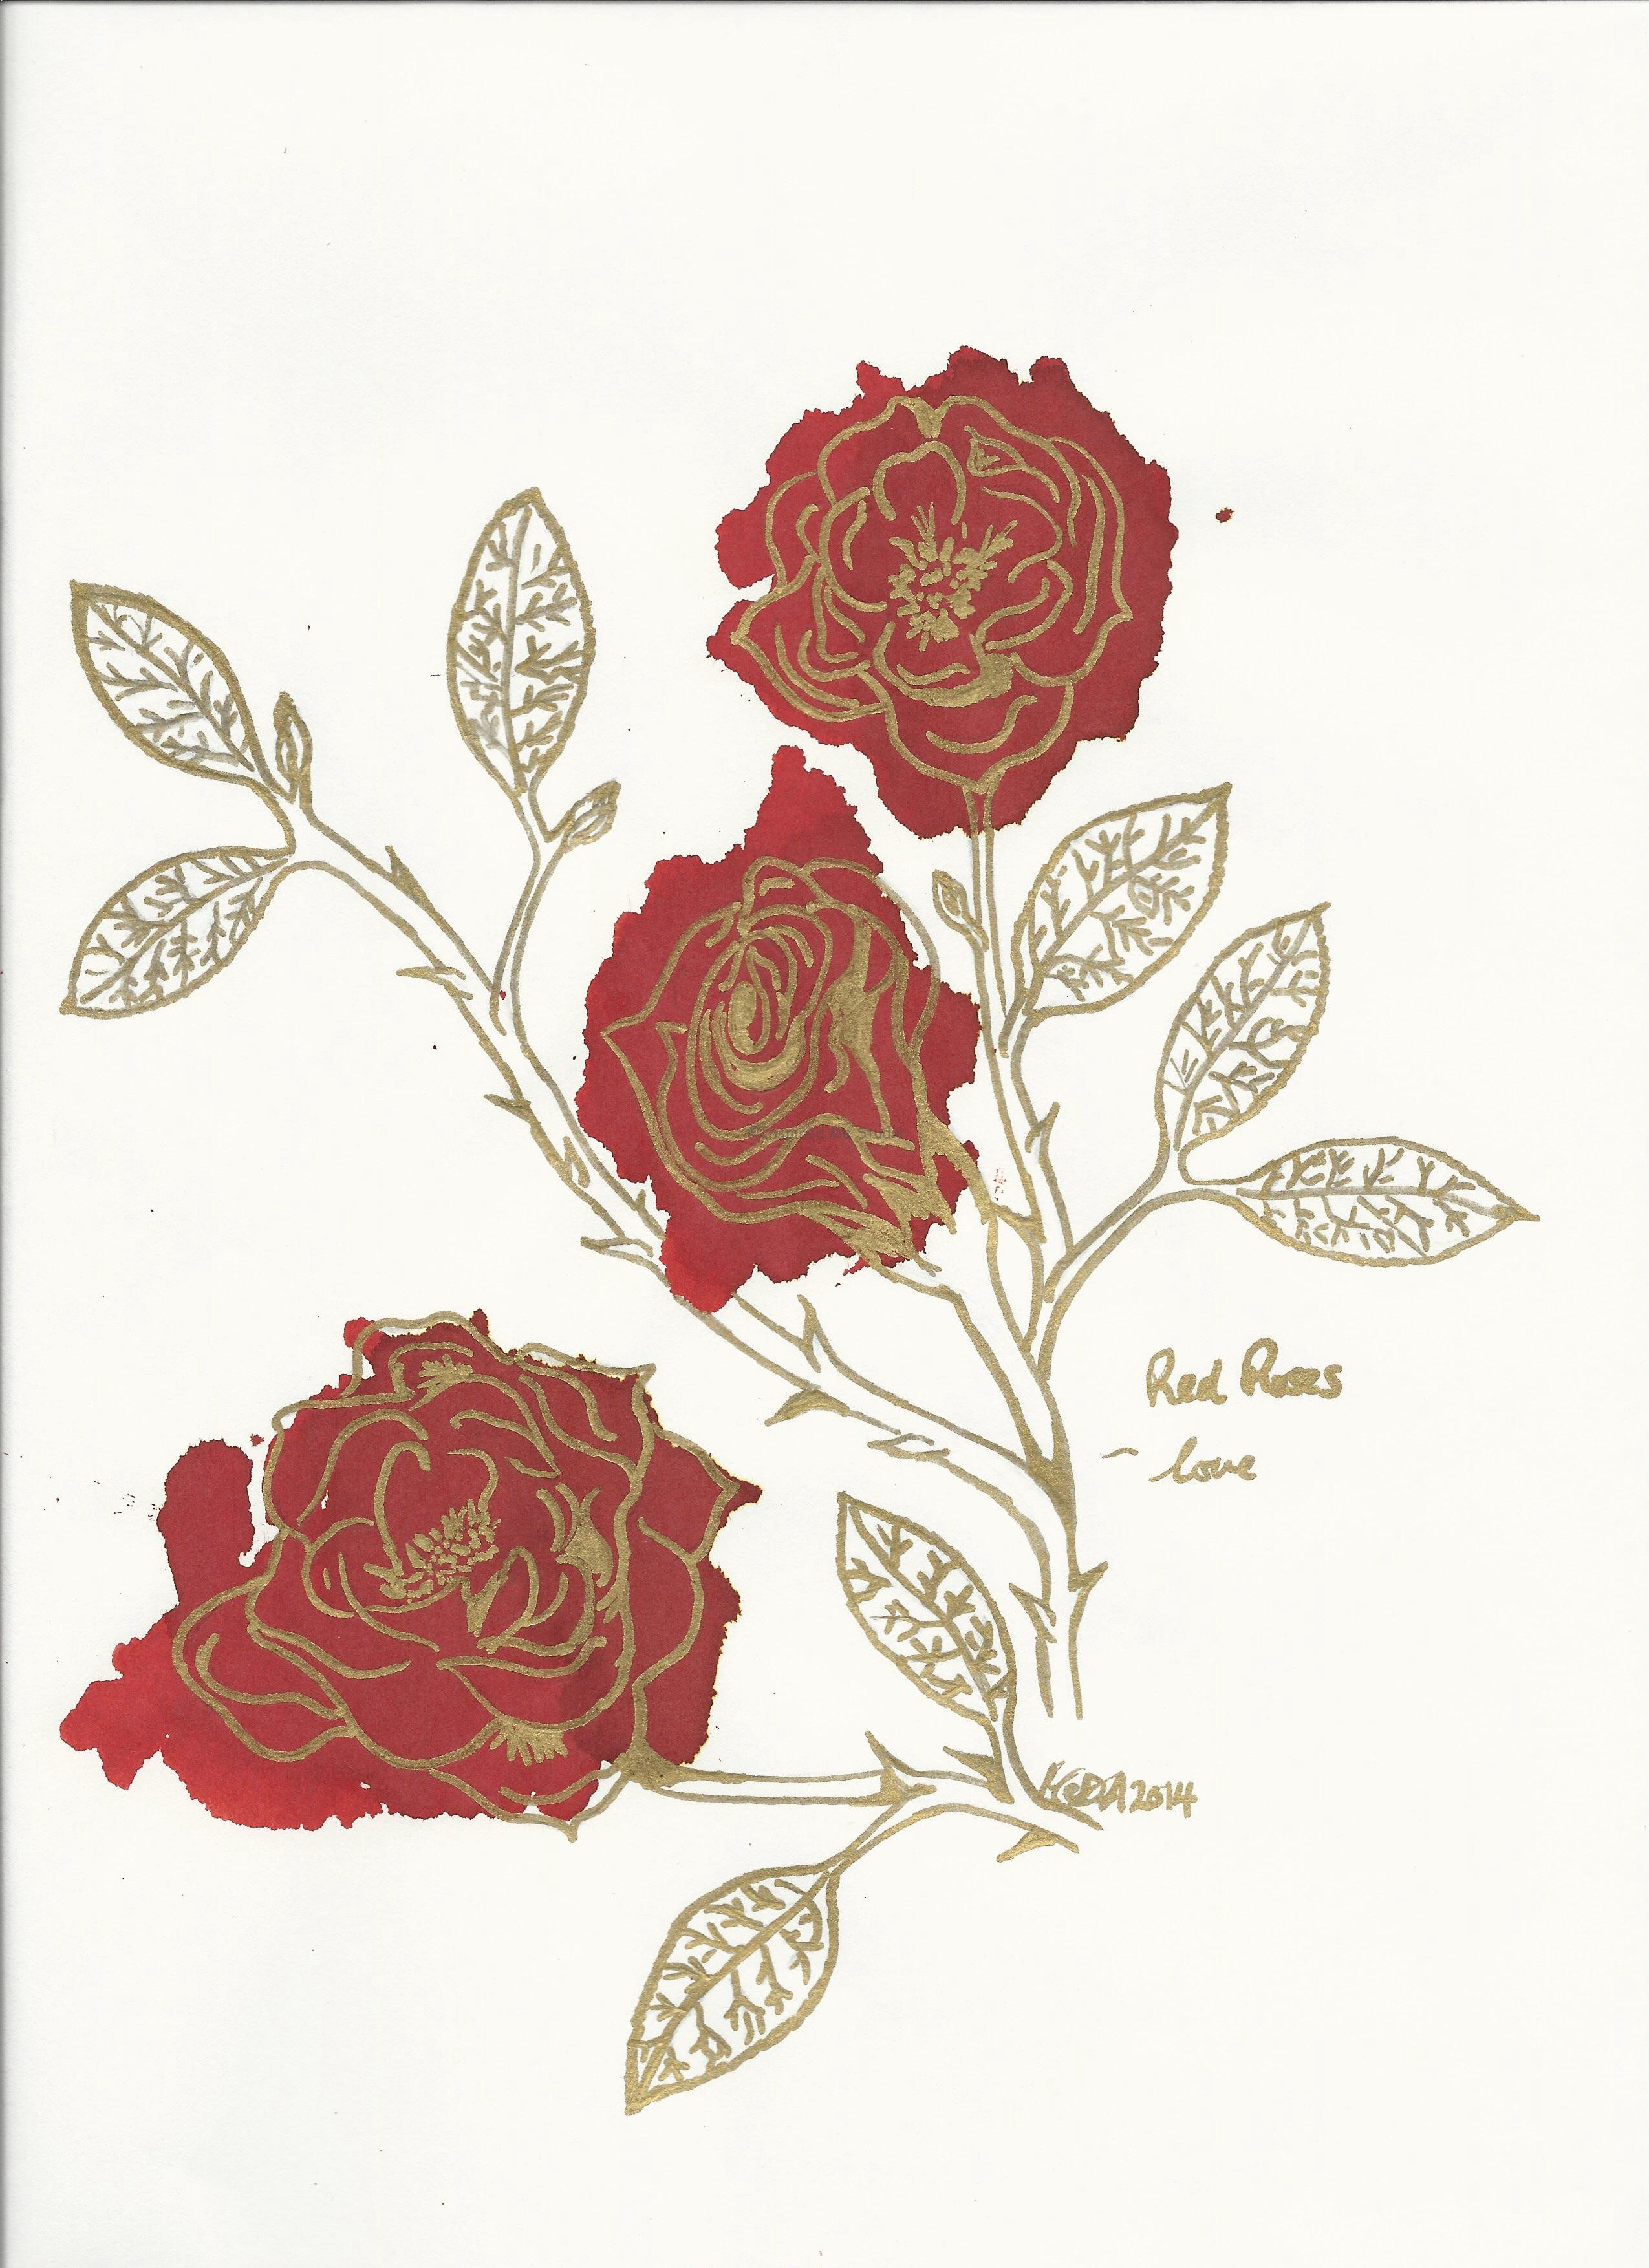 Bunch of red roses stand for love.